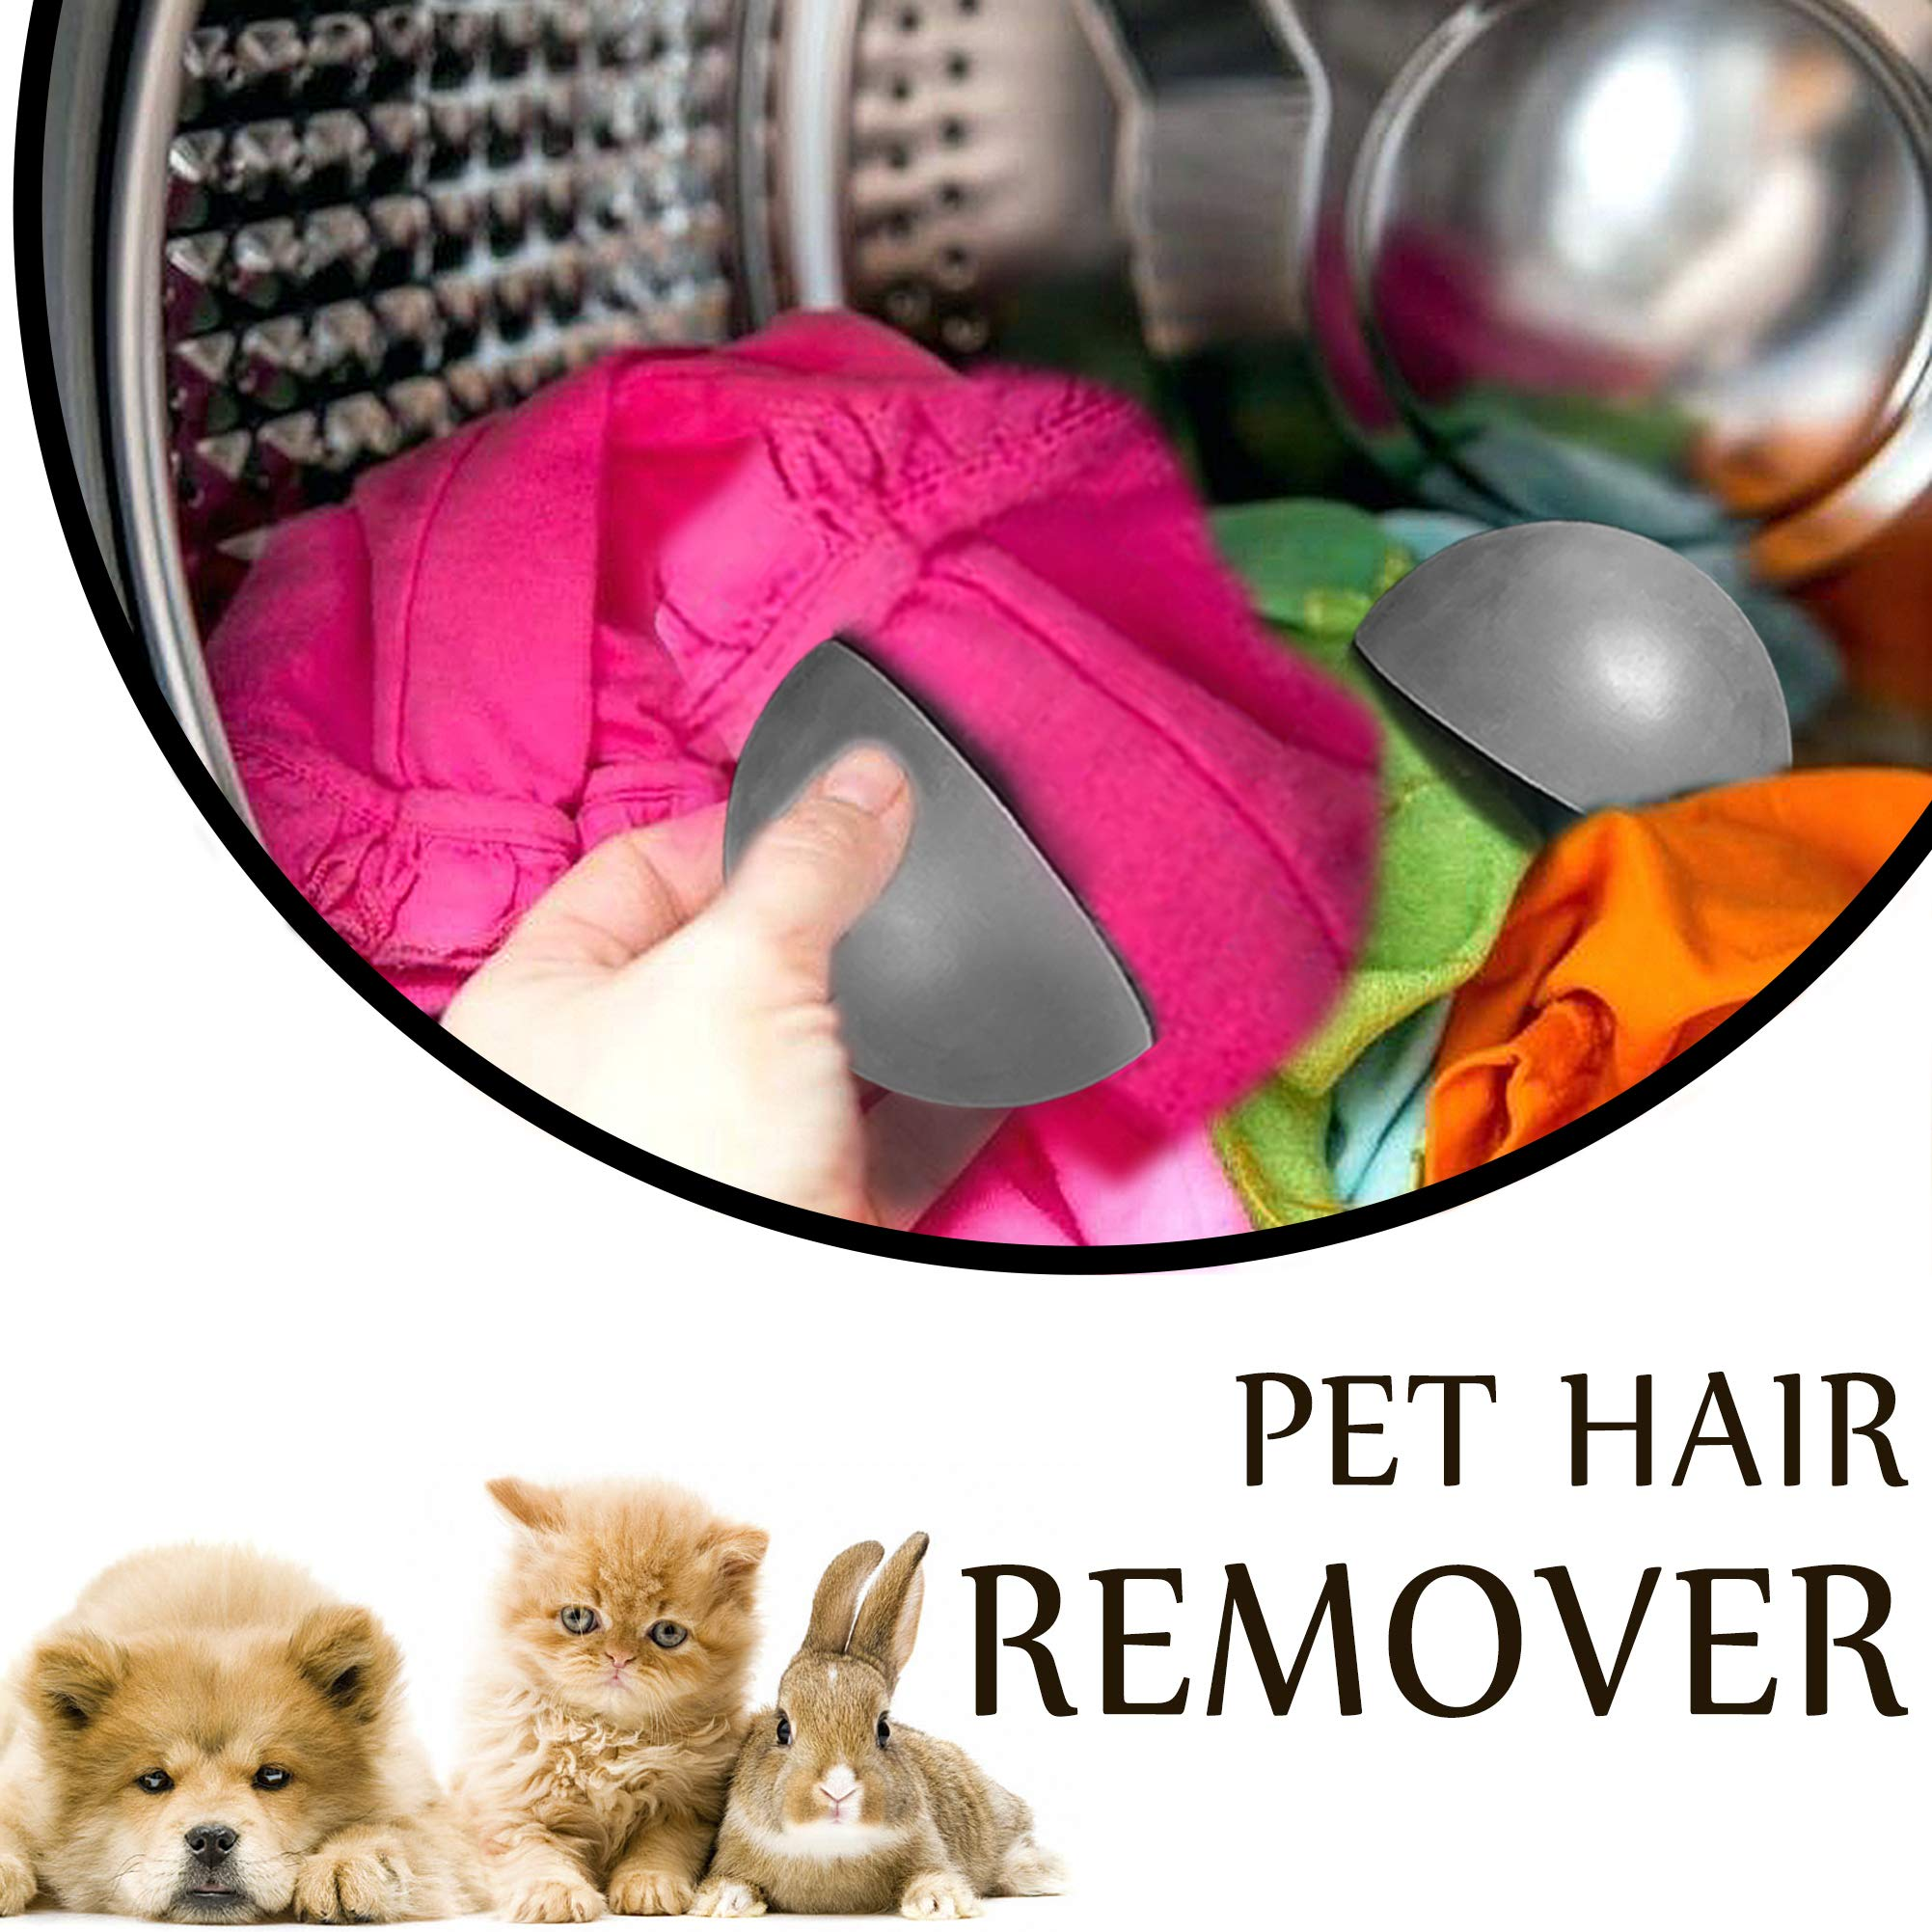 Pet Hair Remover Non-Toxic Reusable Fur Lint Removal Cleaner Remove Dogs and Cats Hair for Laundry Dryer, Clothes, Furniture, Carpets (Gray)